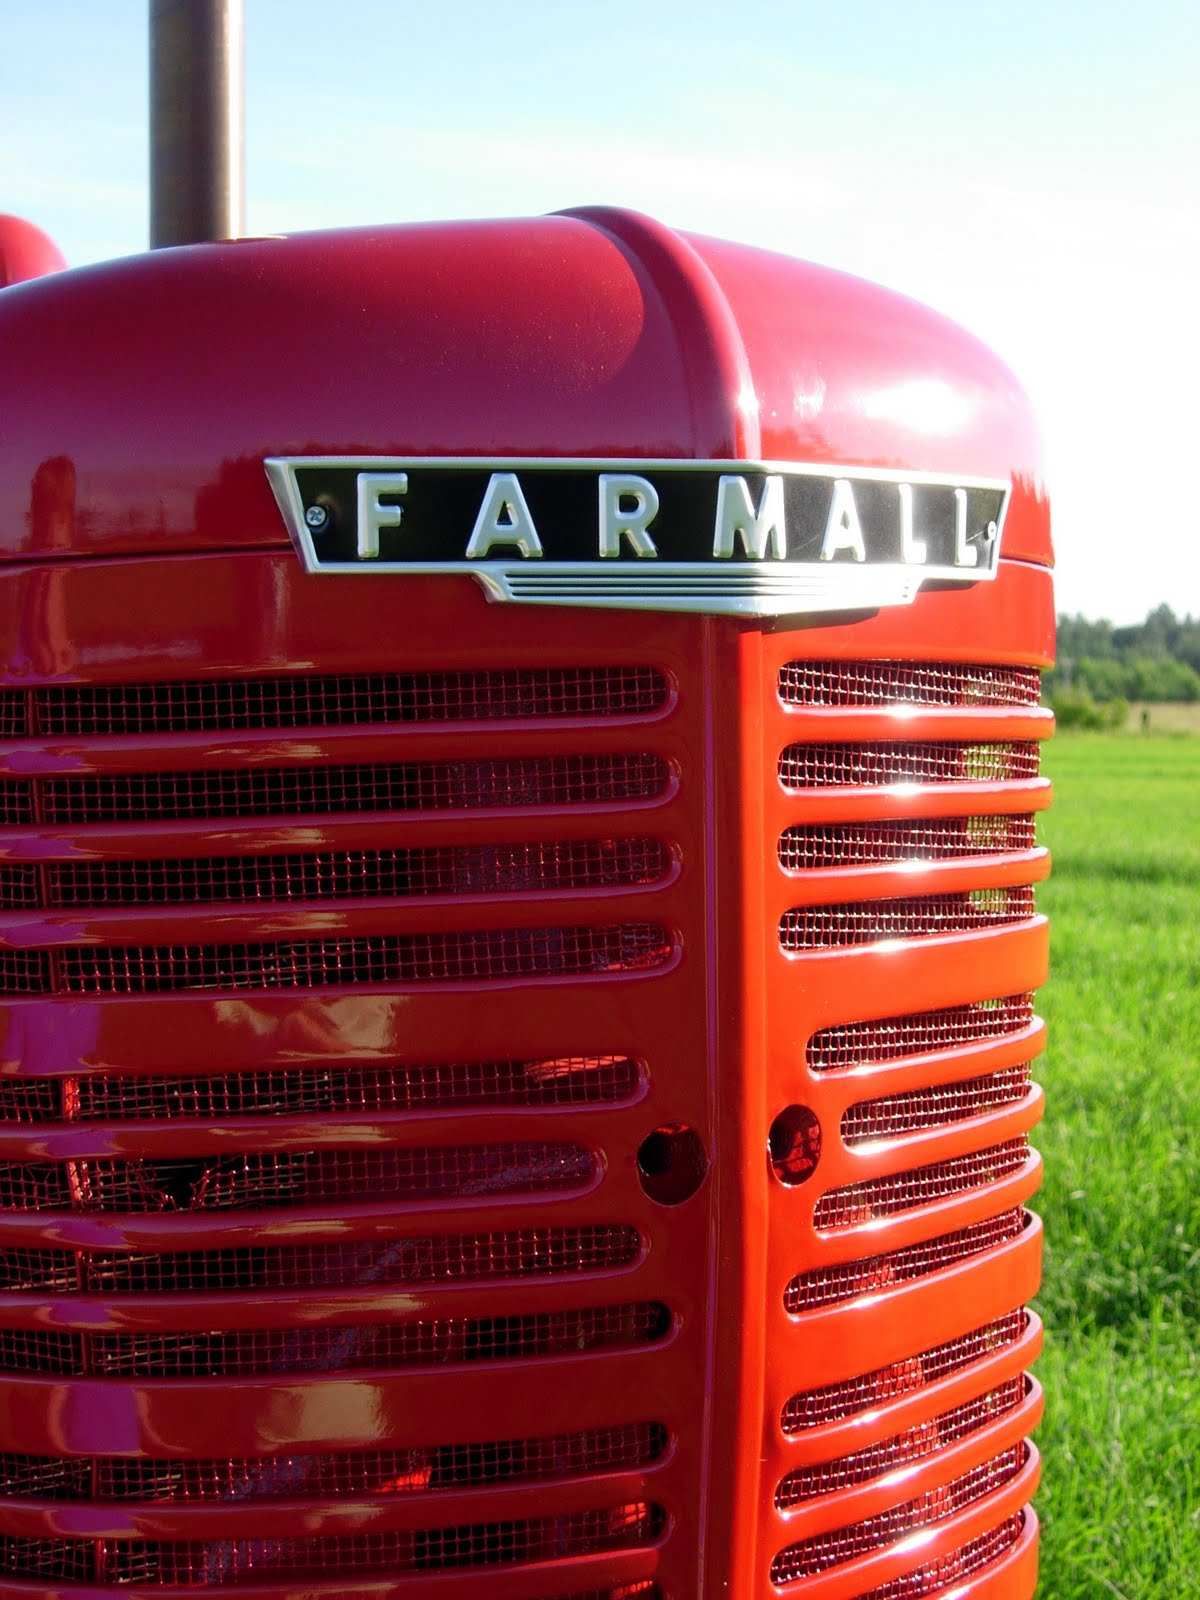 Farmall RedFarmall Logo Wallpaper